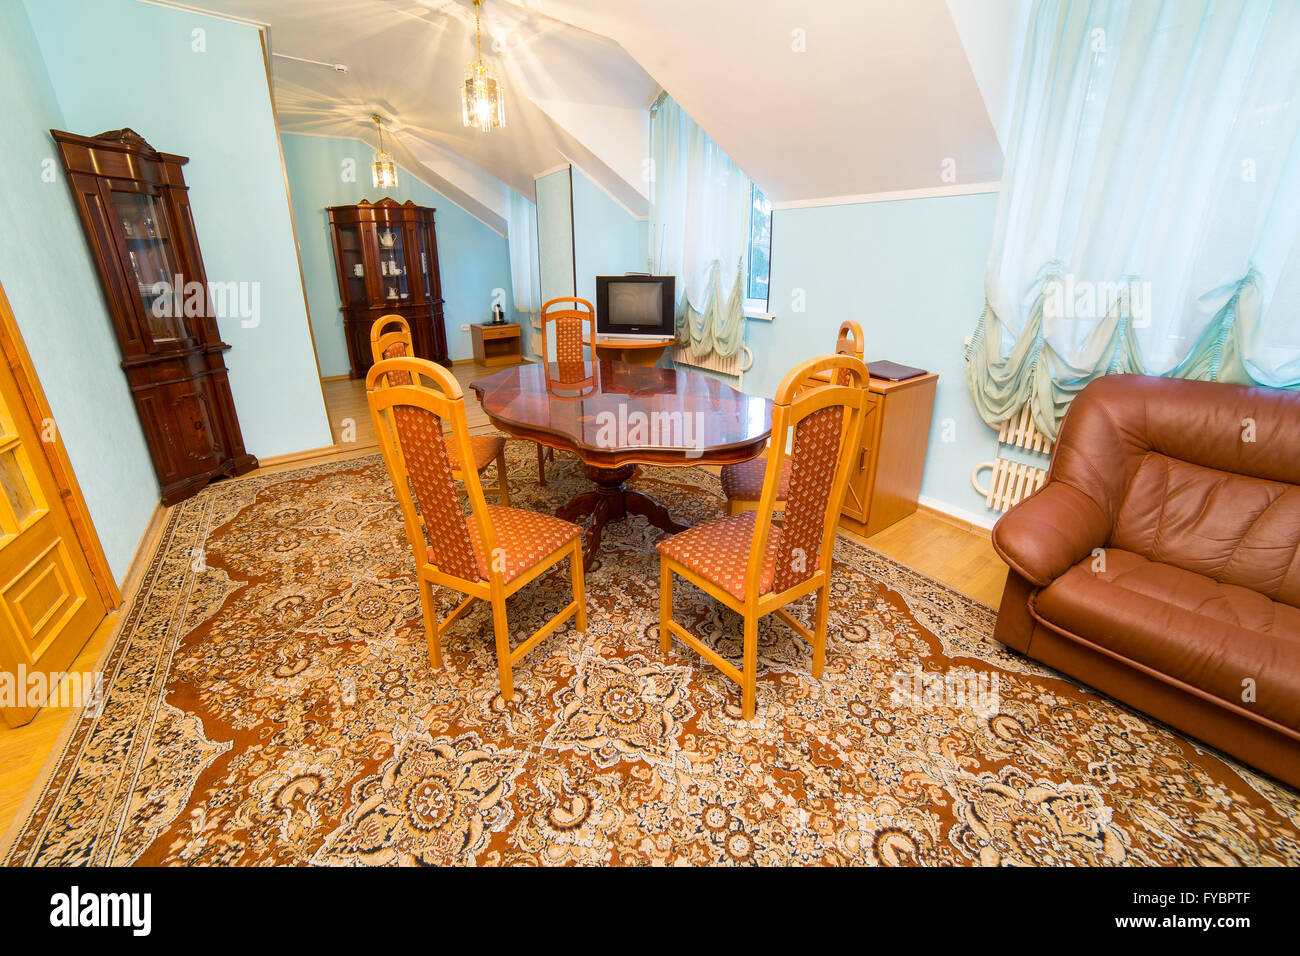 Hotel apartments interior in classic style with round table - Stock Image